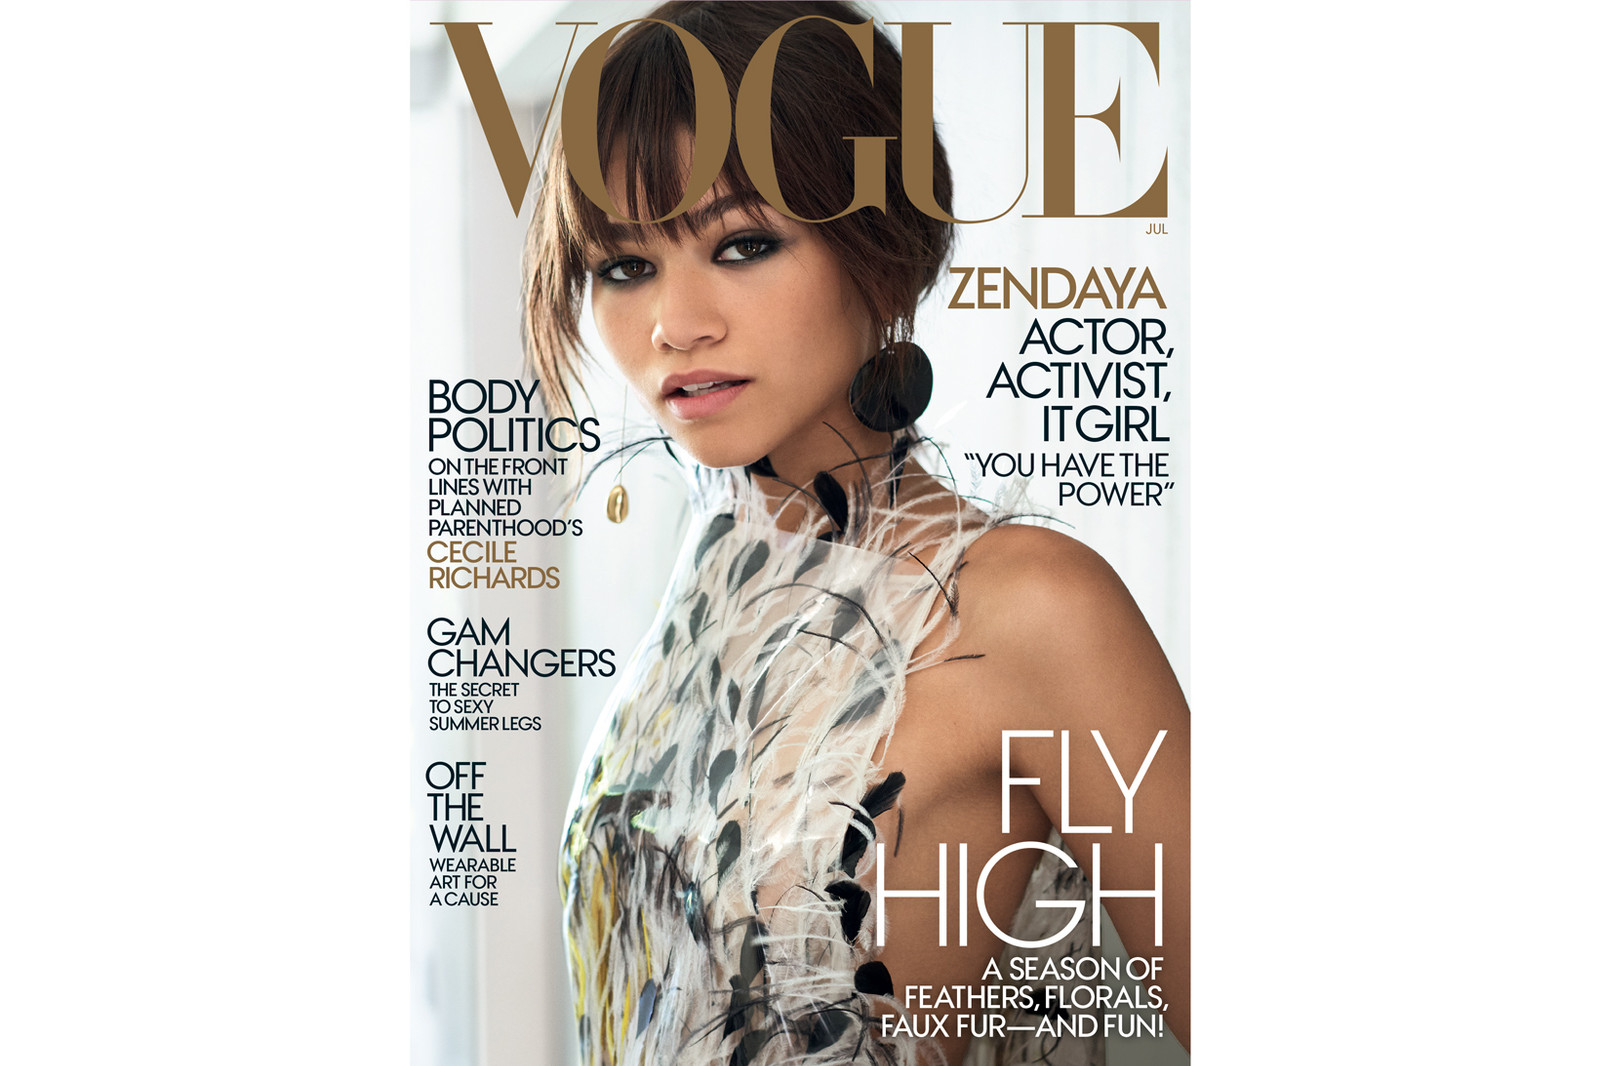 Zendaya Vogue 2017 July Cover